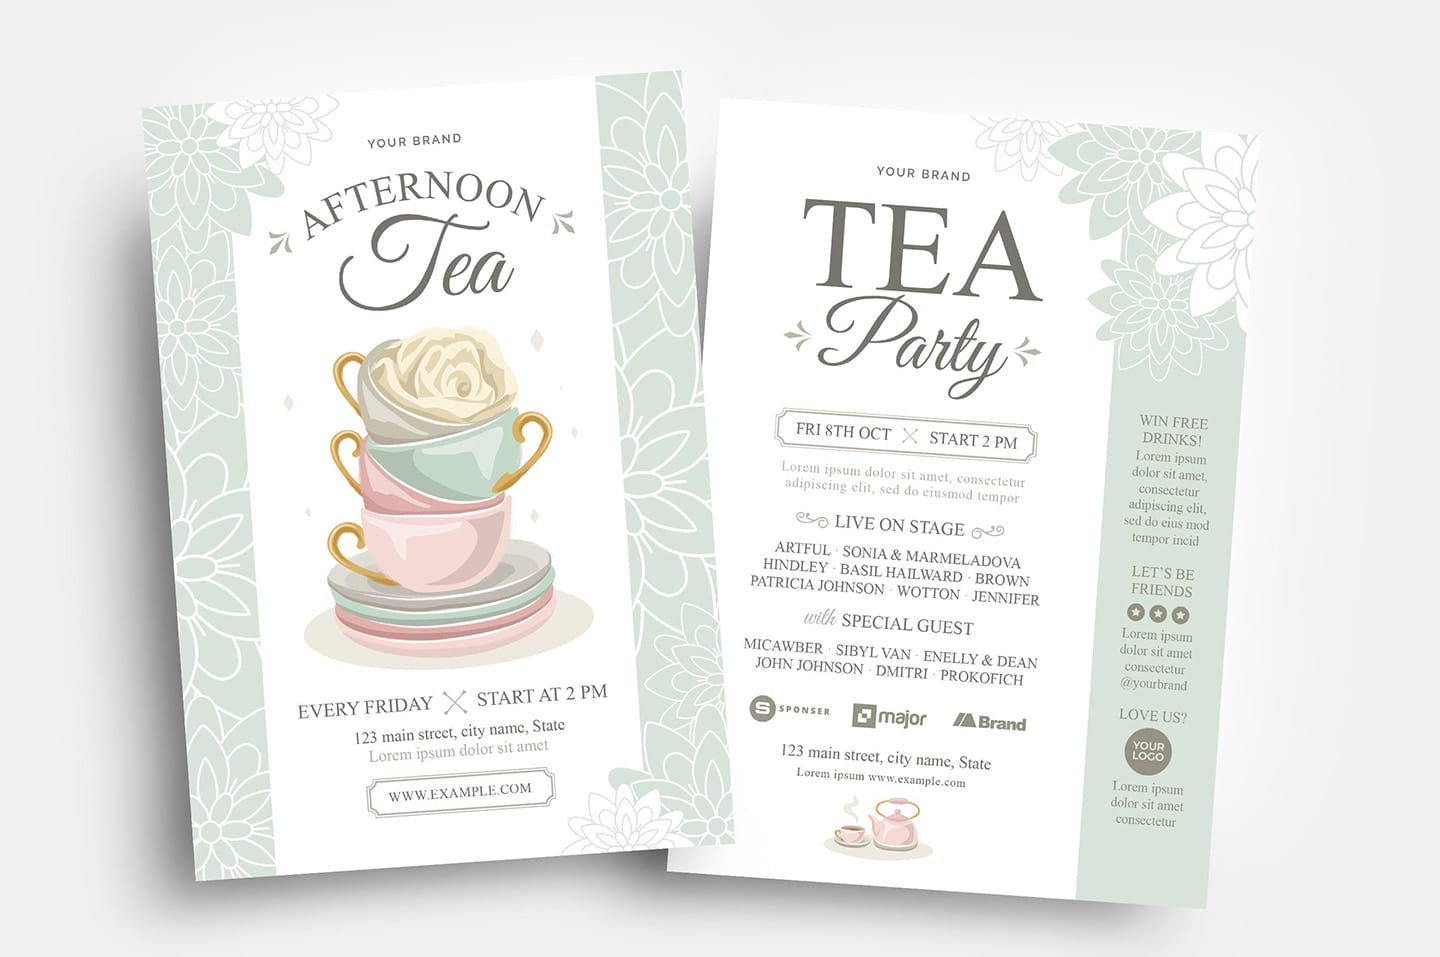 Afternoon Tea Flyer Templates